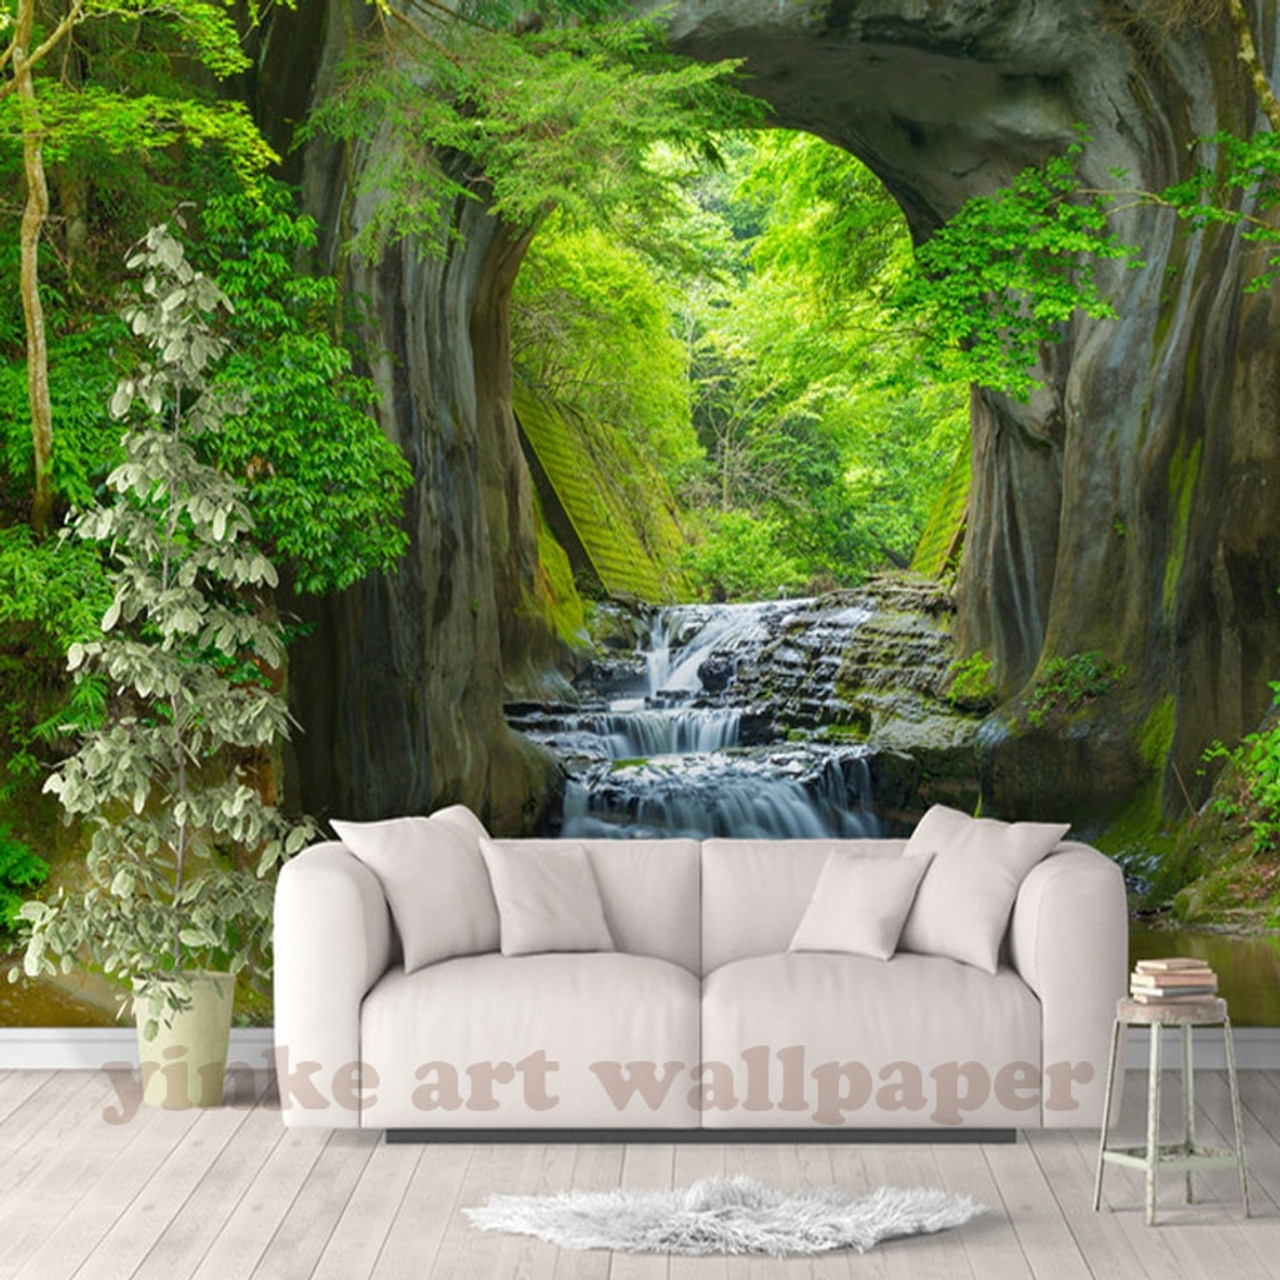 Custom 3d Fresh Rill Forest Wall Mural Photo Wallpaper Scenery For